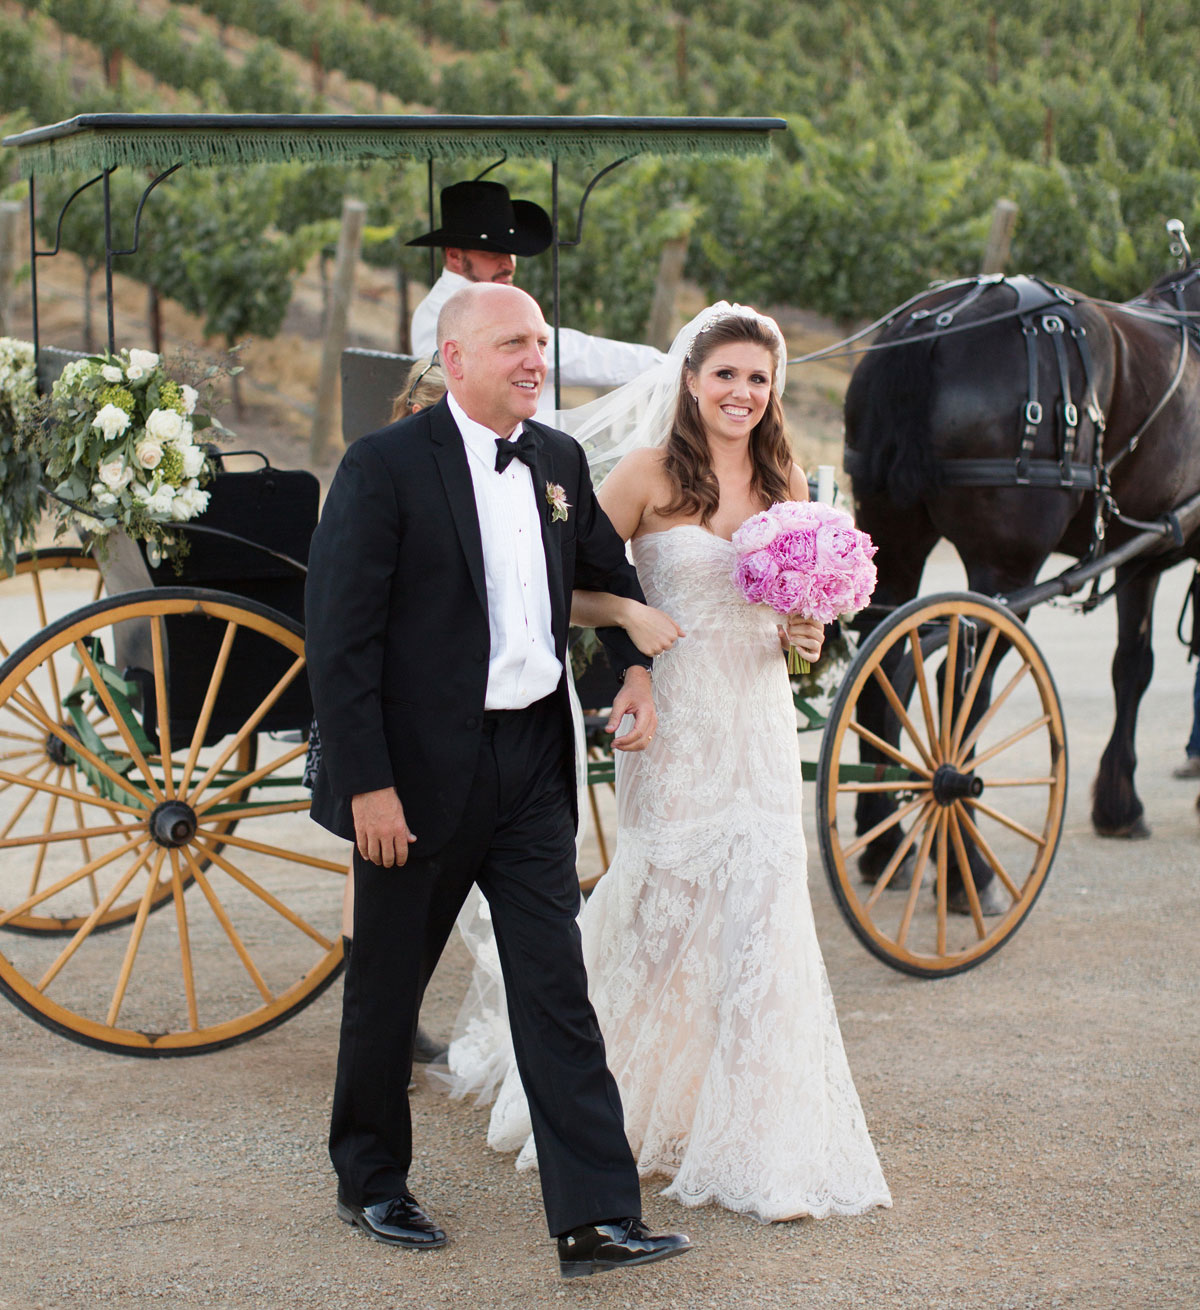 Bride escorted off of horse drawn carriage